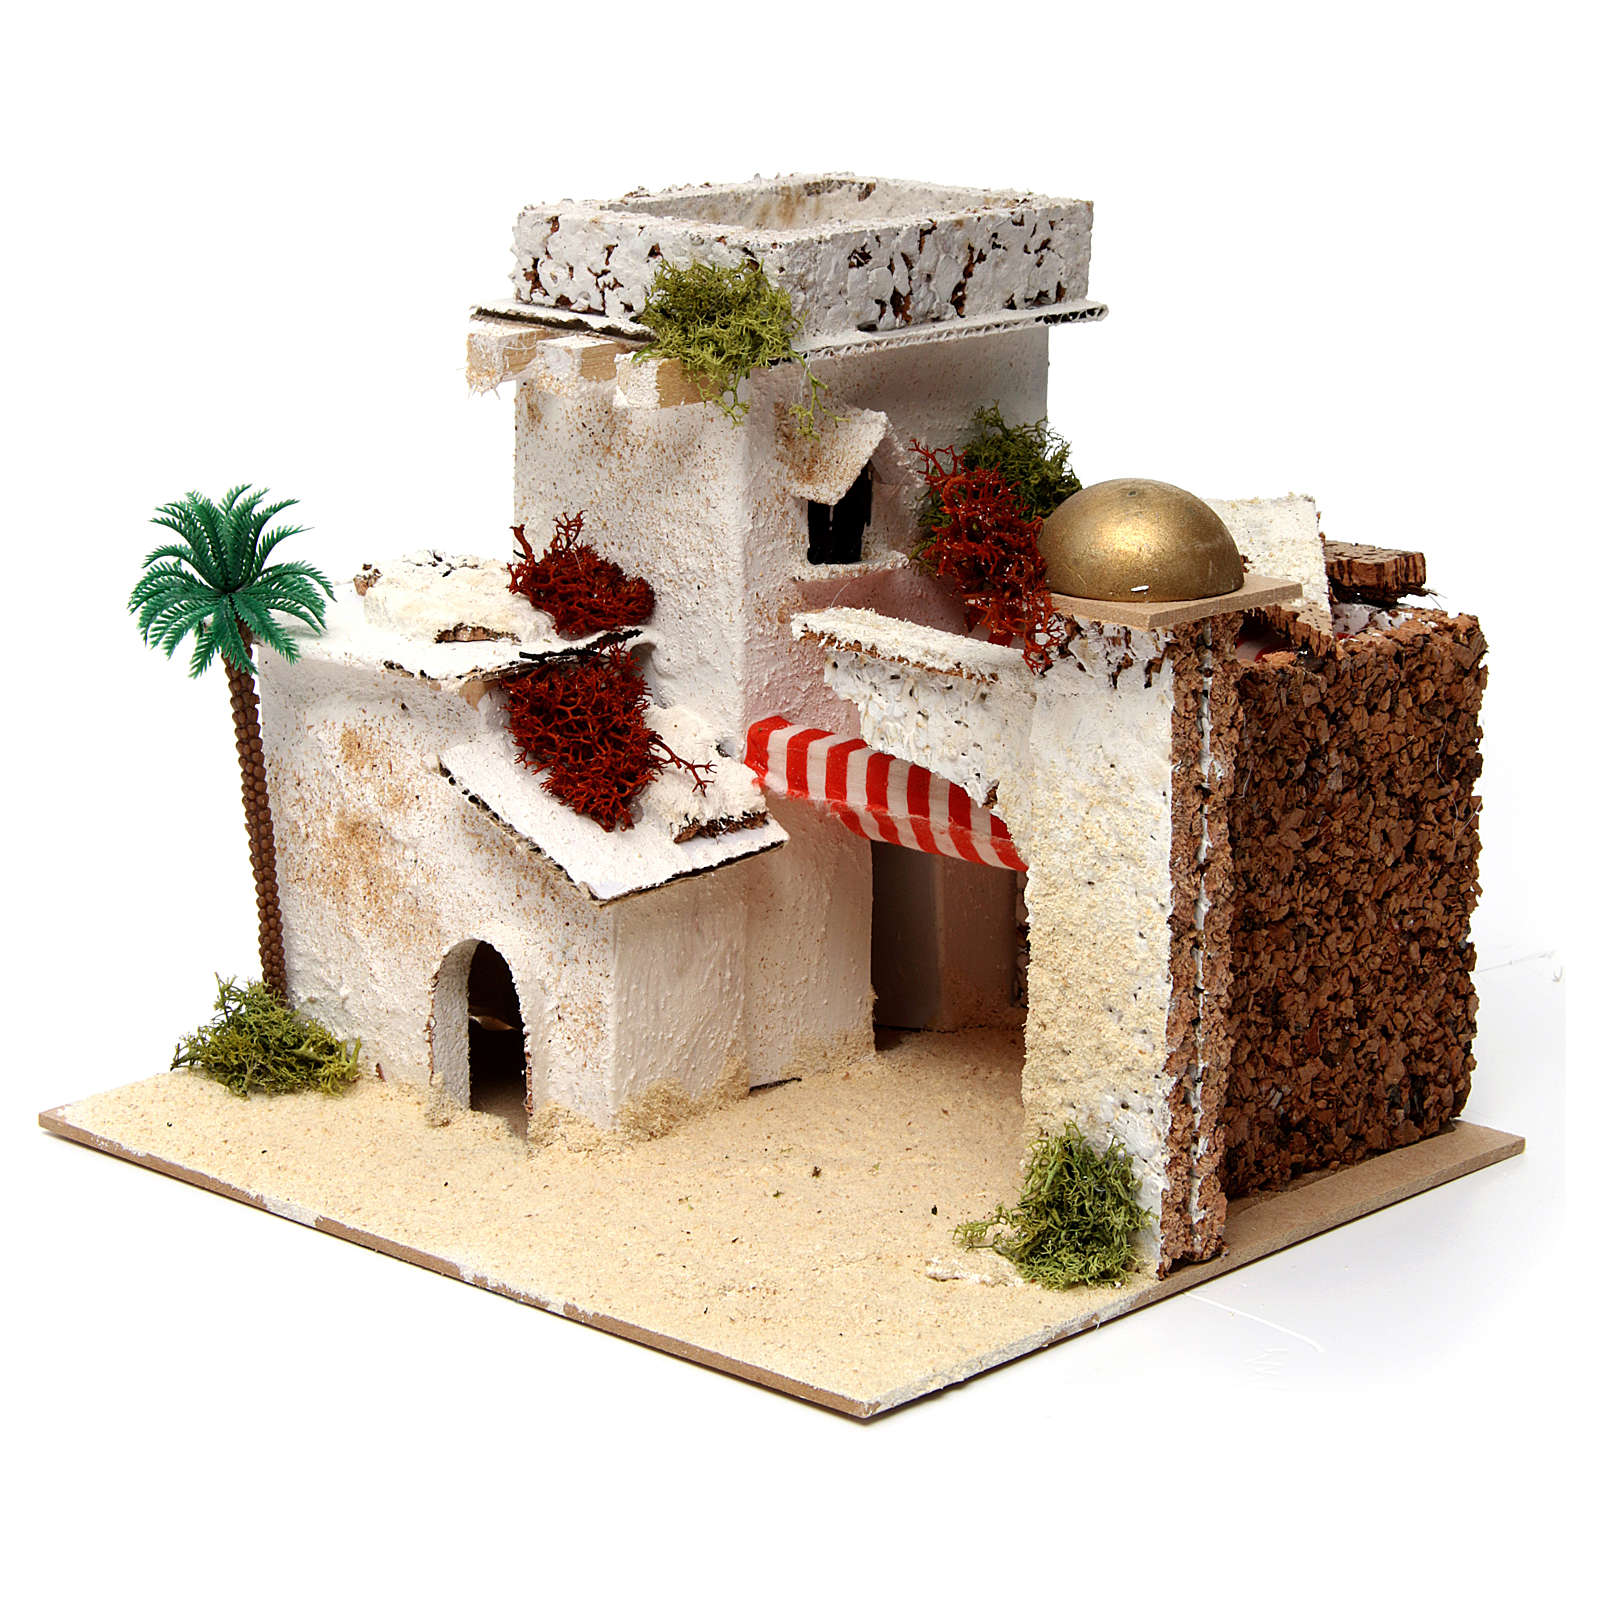 Arab style house with palm tree and porch 20x25x20 cm 4